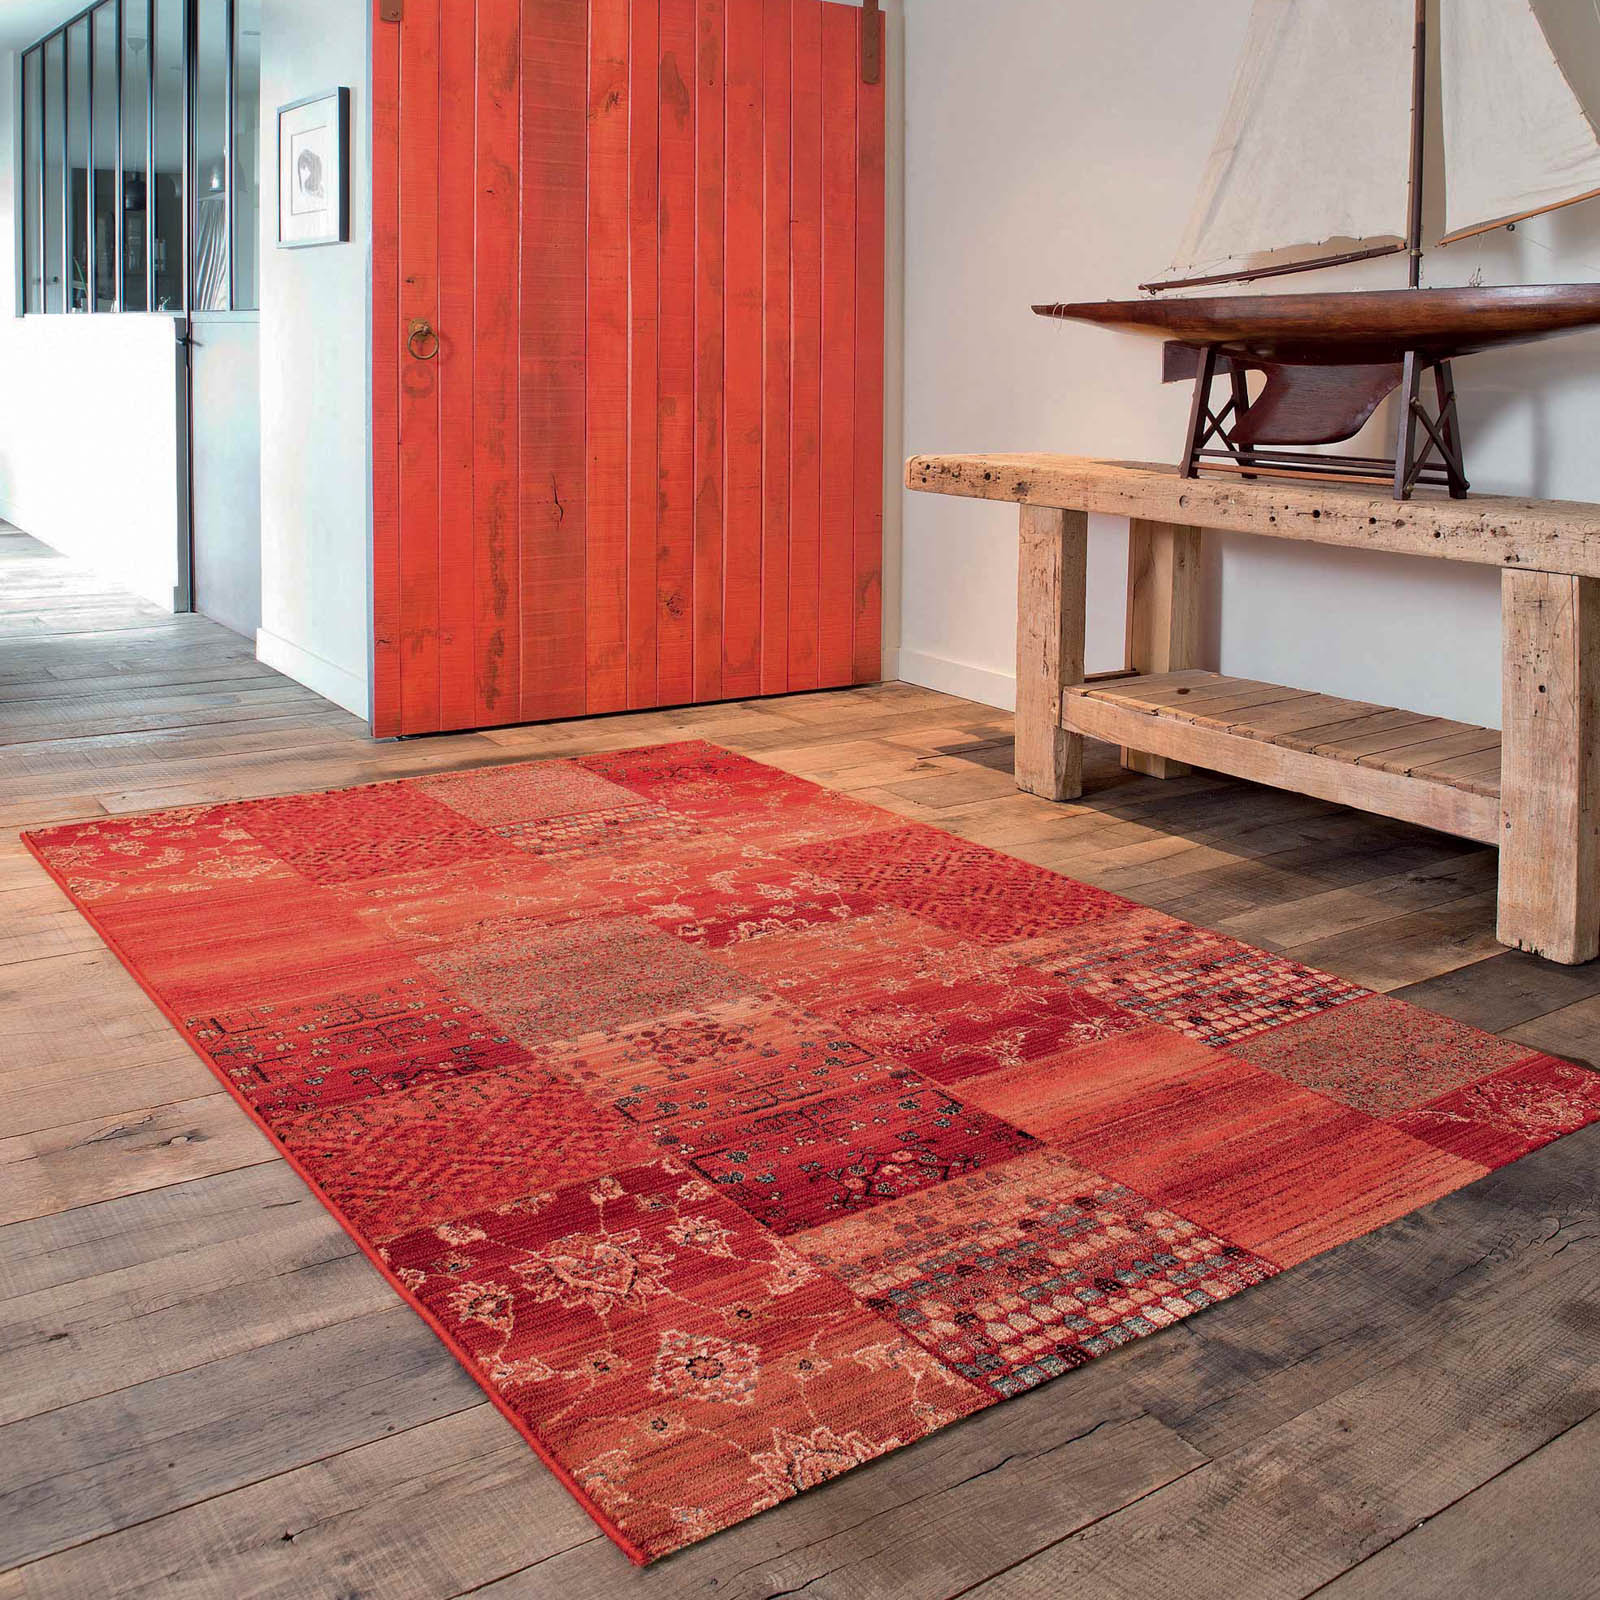 Royal Kashqai Rugs 4327 300 in Red